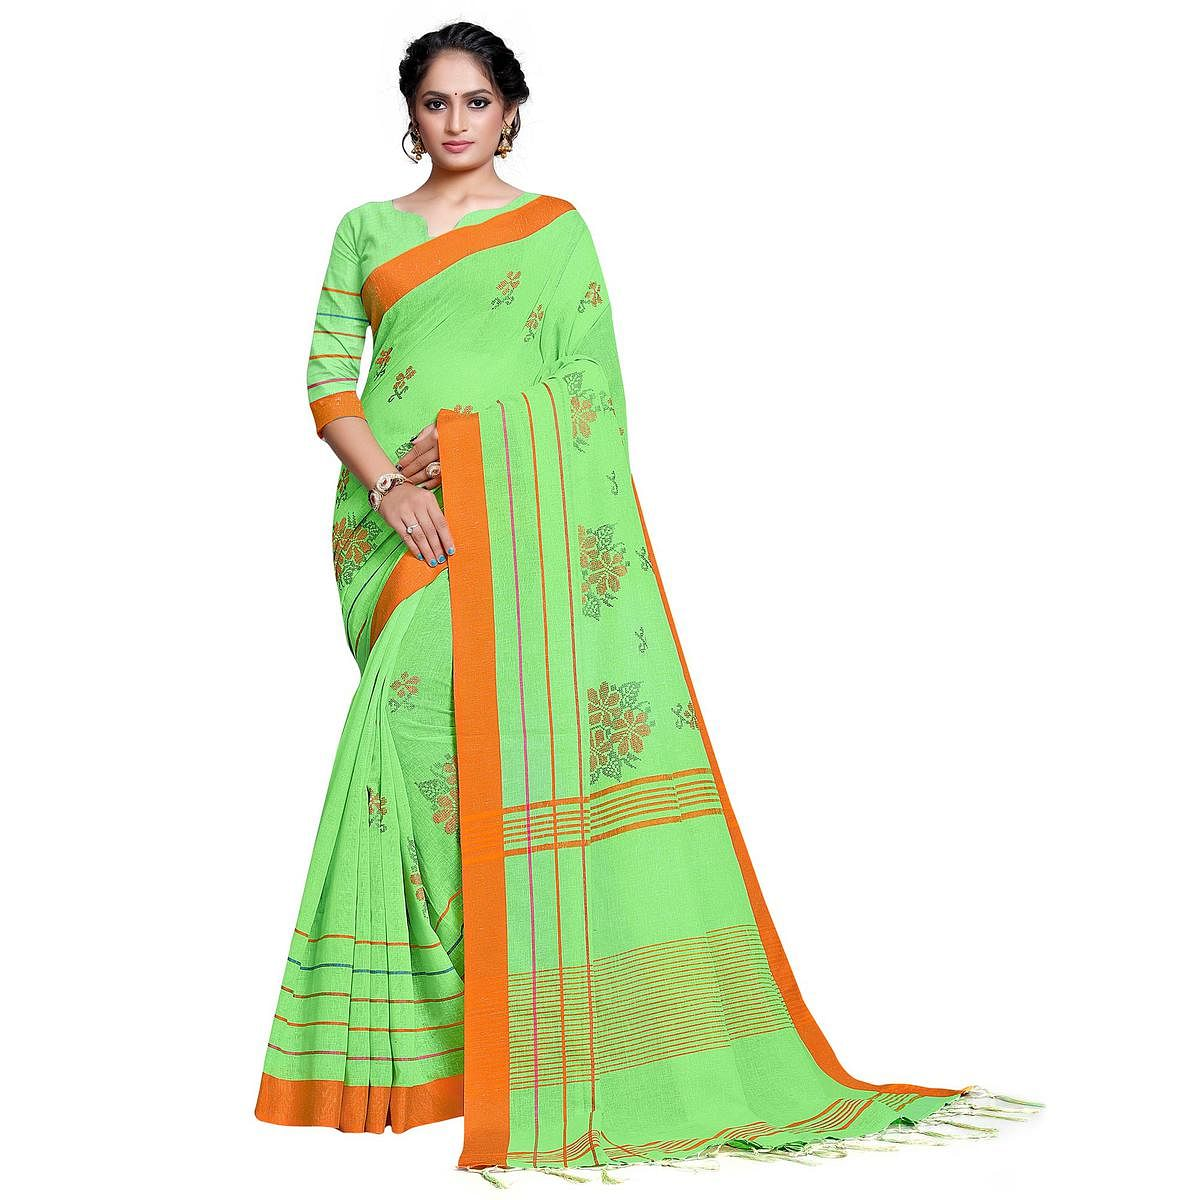 Eye-catching Green Colored Festive Wear Embroidered Linen Saree